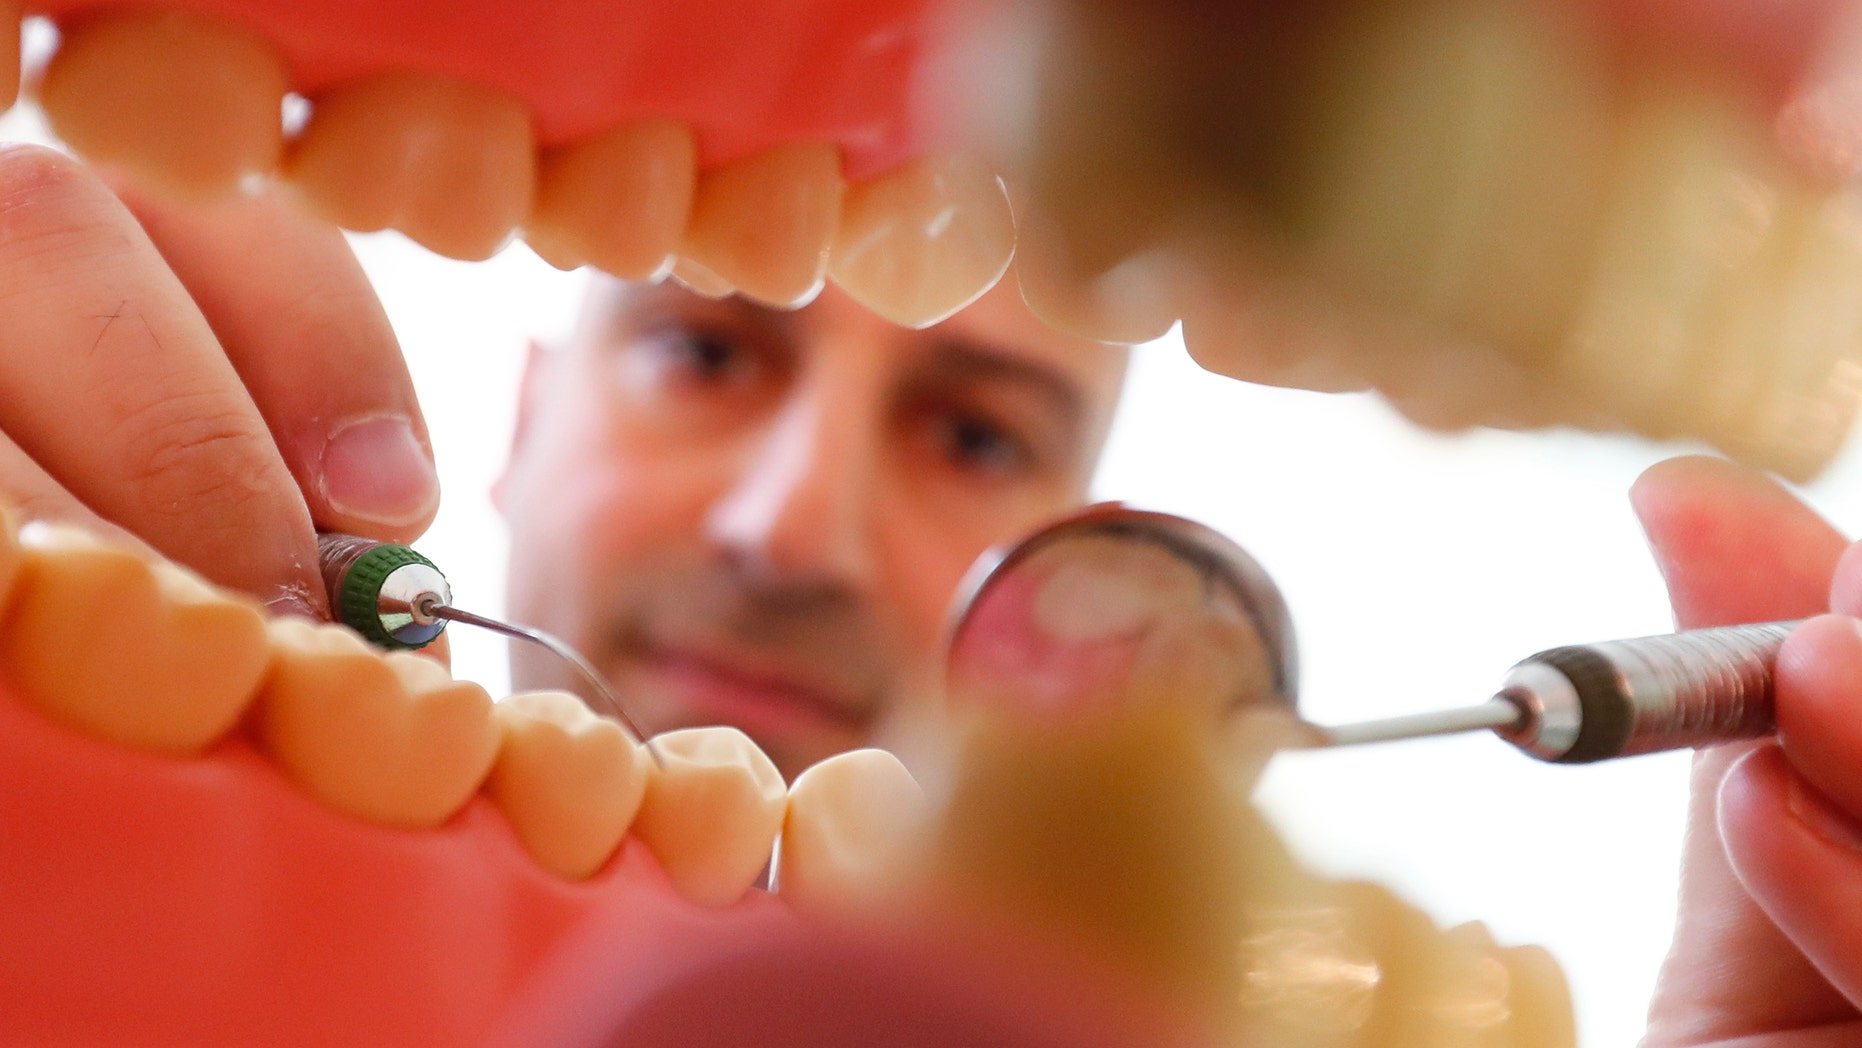 Dentist Sevan Arzuyan poses for an illustration picture with a teeth model at his surgery room in Hanau near Frankfurt, Germany, March 7, 2016.    REUTERS/Kai Pfaffenbach  - RTSB1YZ